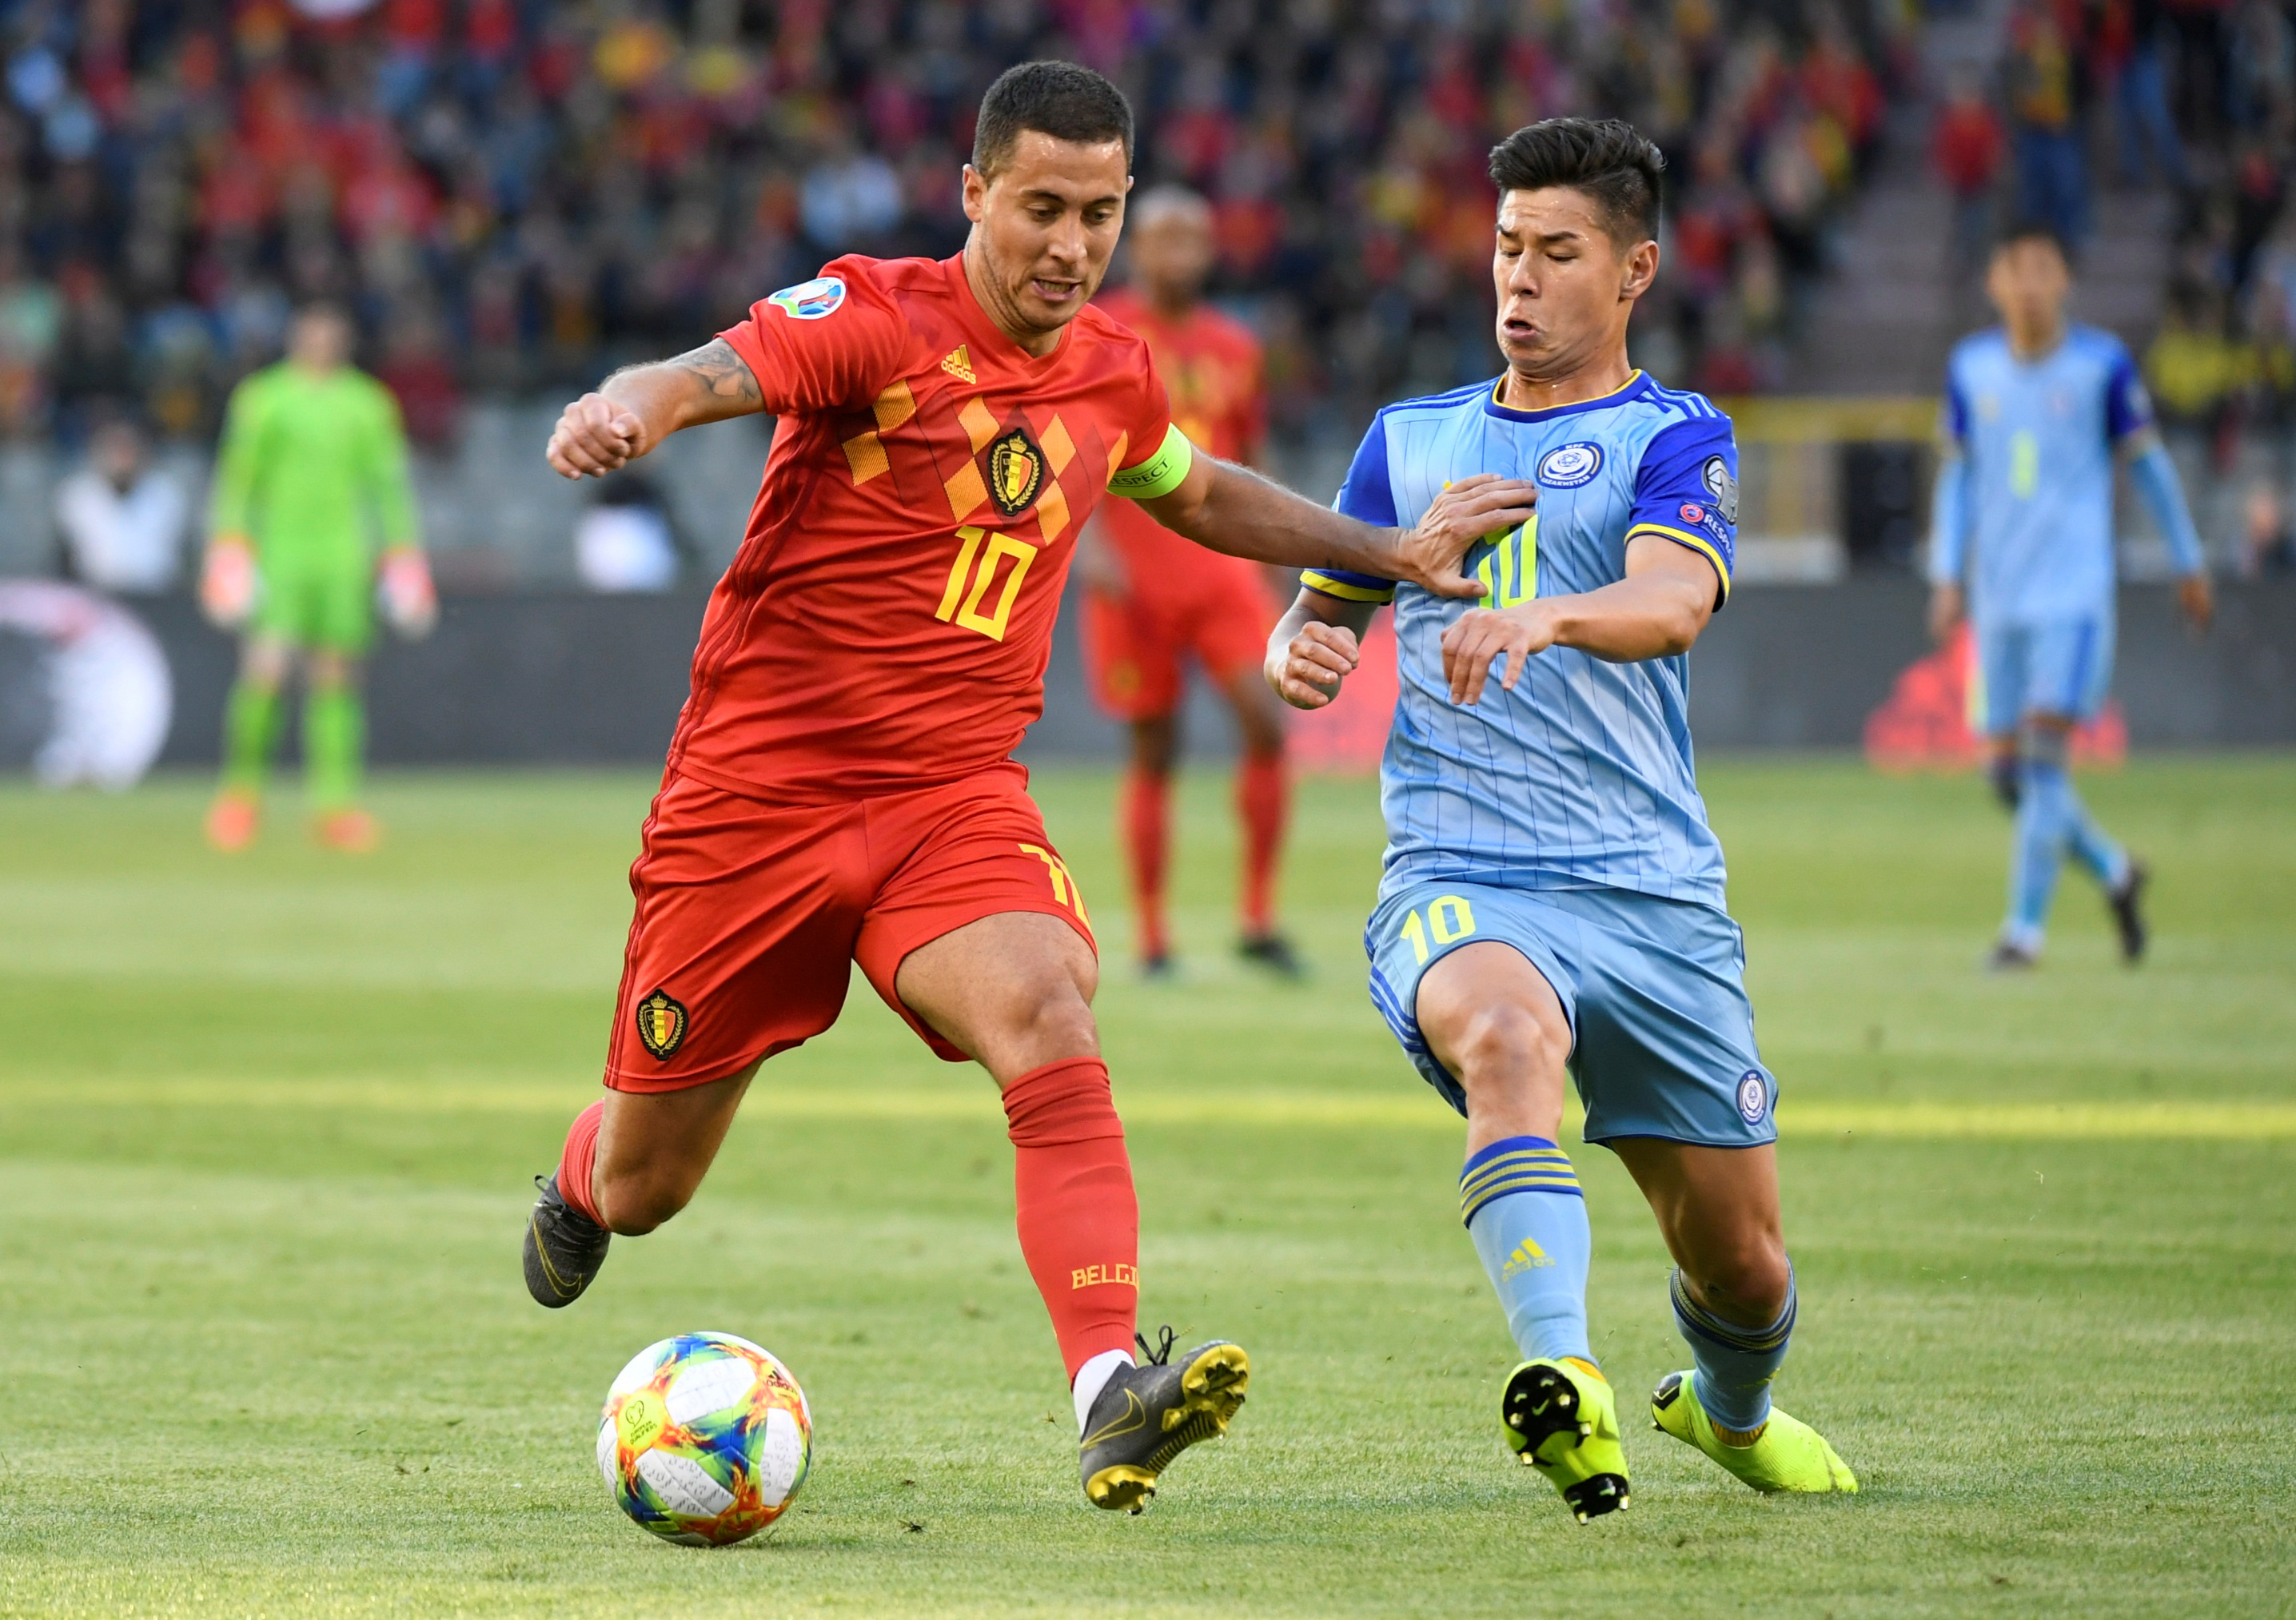 Belgium top Group I with 100 percent record | The Star Online